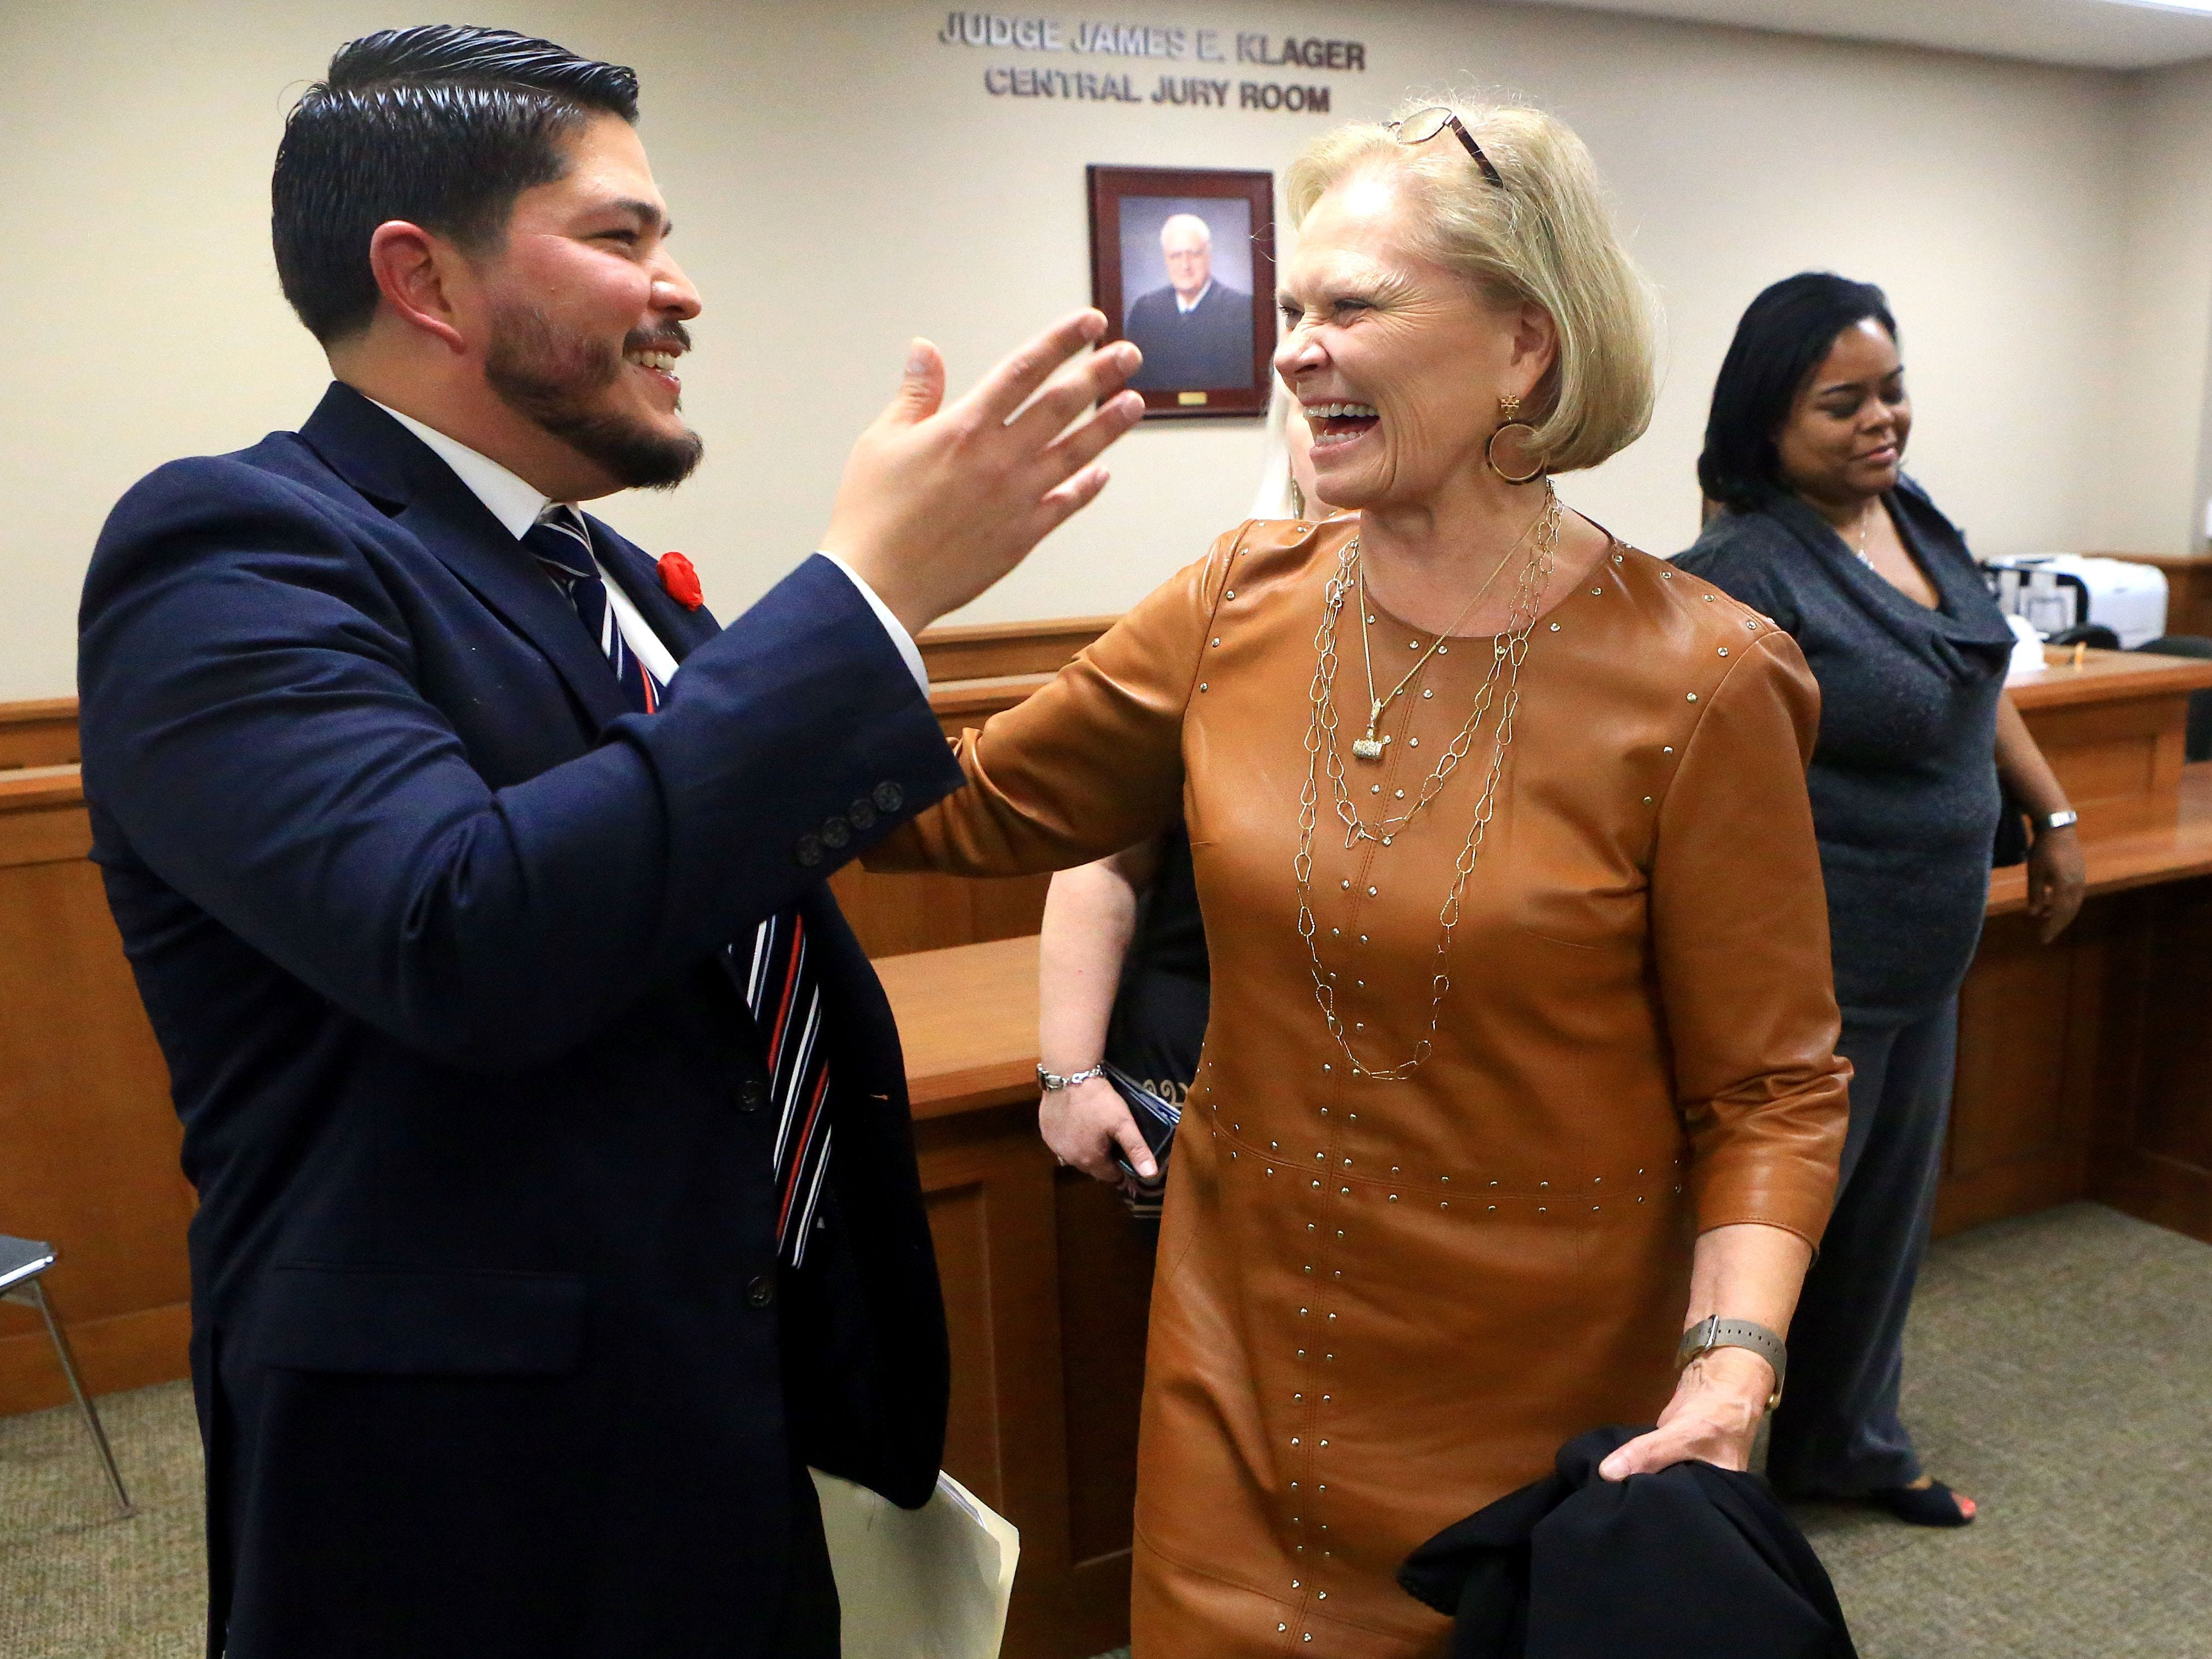 Nueces County District Attorney Mark Gonzalez talks with 117th District Court Judge Sandra Watts after being sworn in at the Nueces County Courthouse in 2017. There are more women judges than ever in Nueces County.